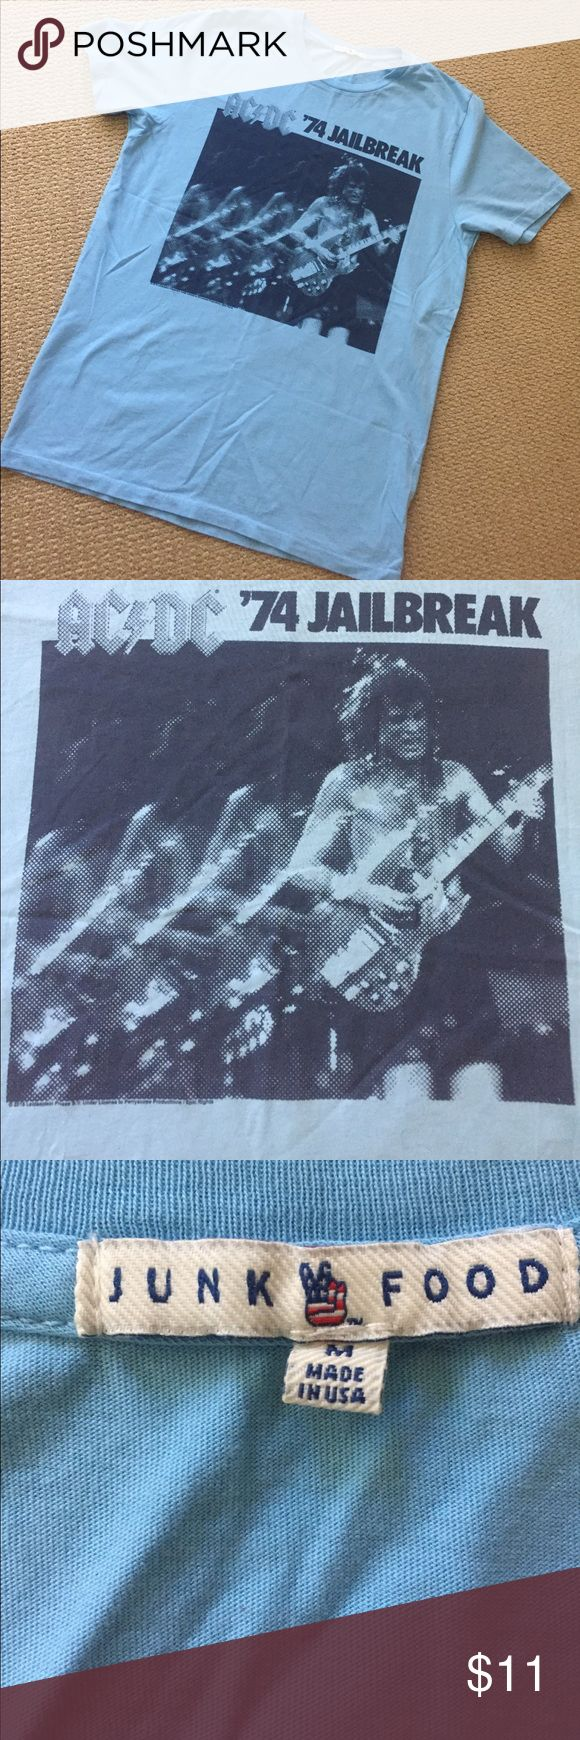 "AC/DC '74 Jailbreak Mens T Shirt Light blue with graphic on front. Label is Junkfood - Made In USA 🇺🇸 Pit to pit 22""- length 29"" size M. EUC! Junk Food Clothing Shirts Tees - Short Sleeve"